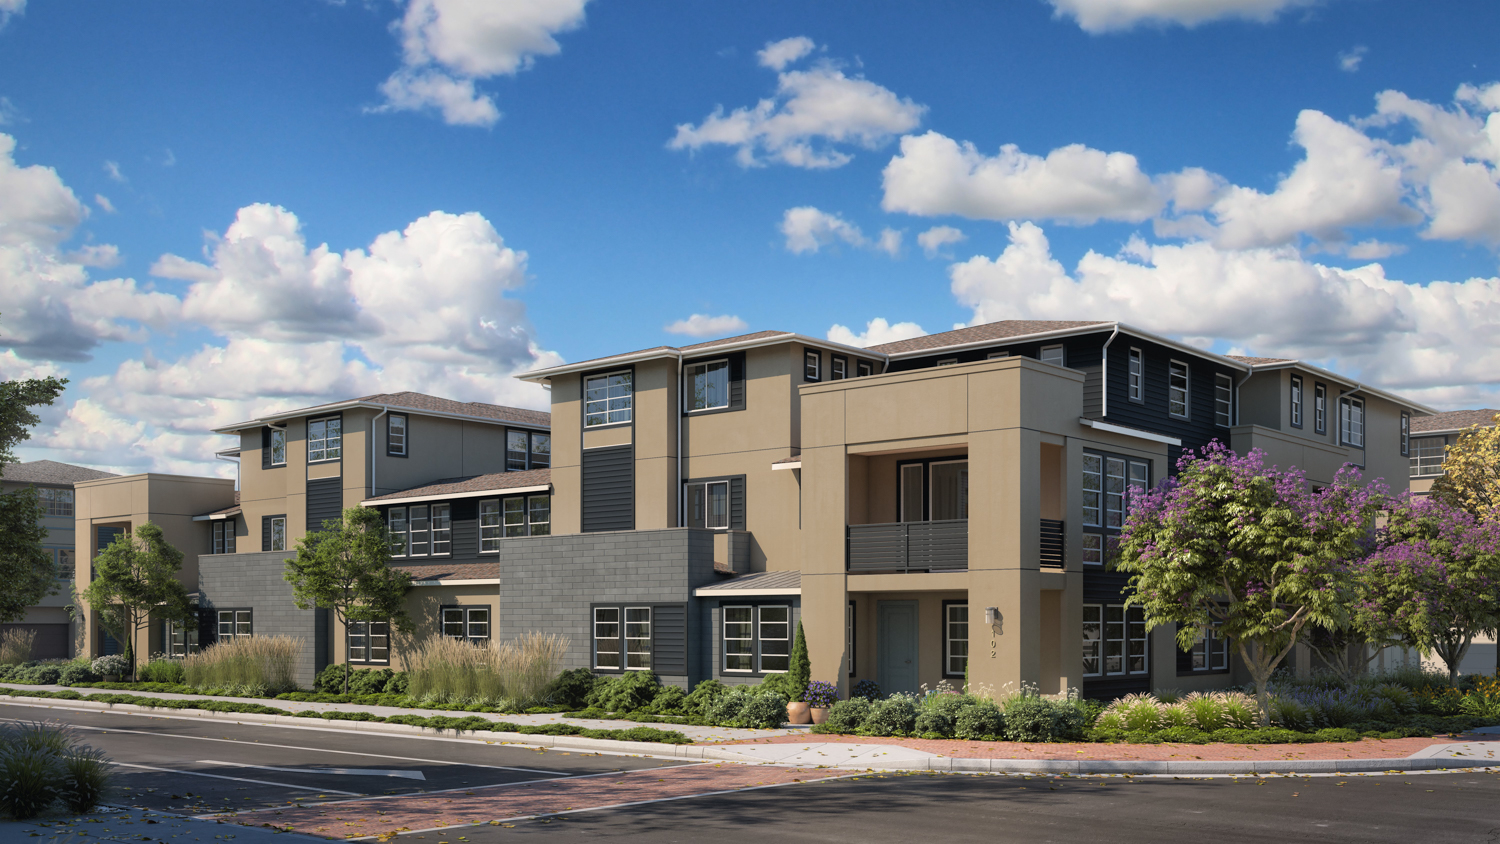 Downing house rendering, image courtesy Lennar